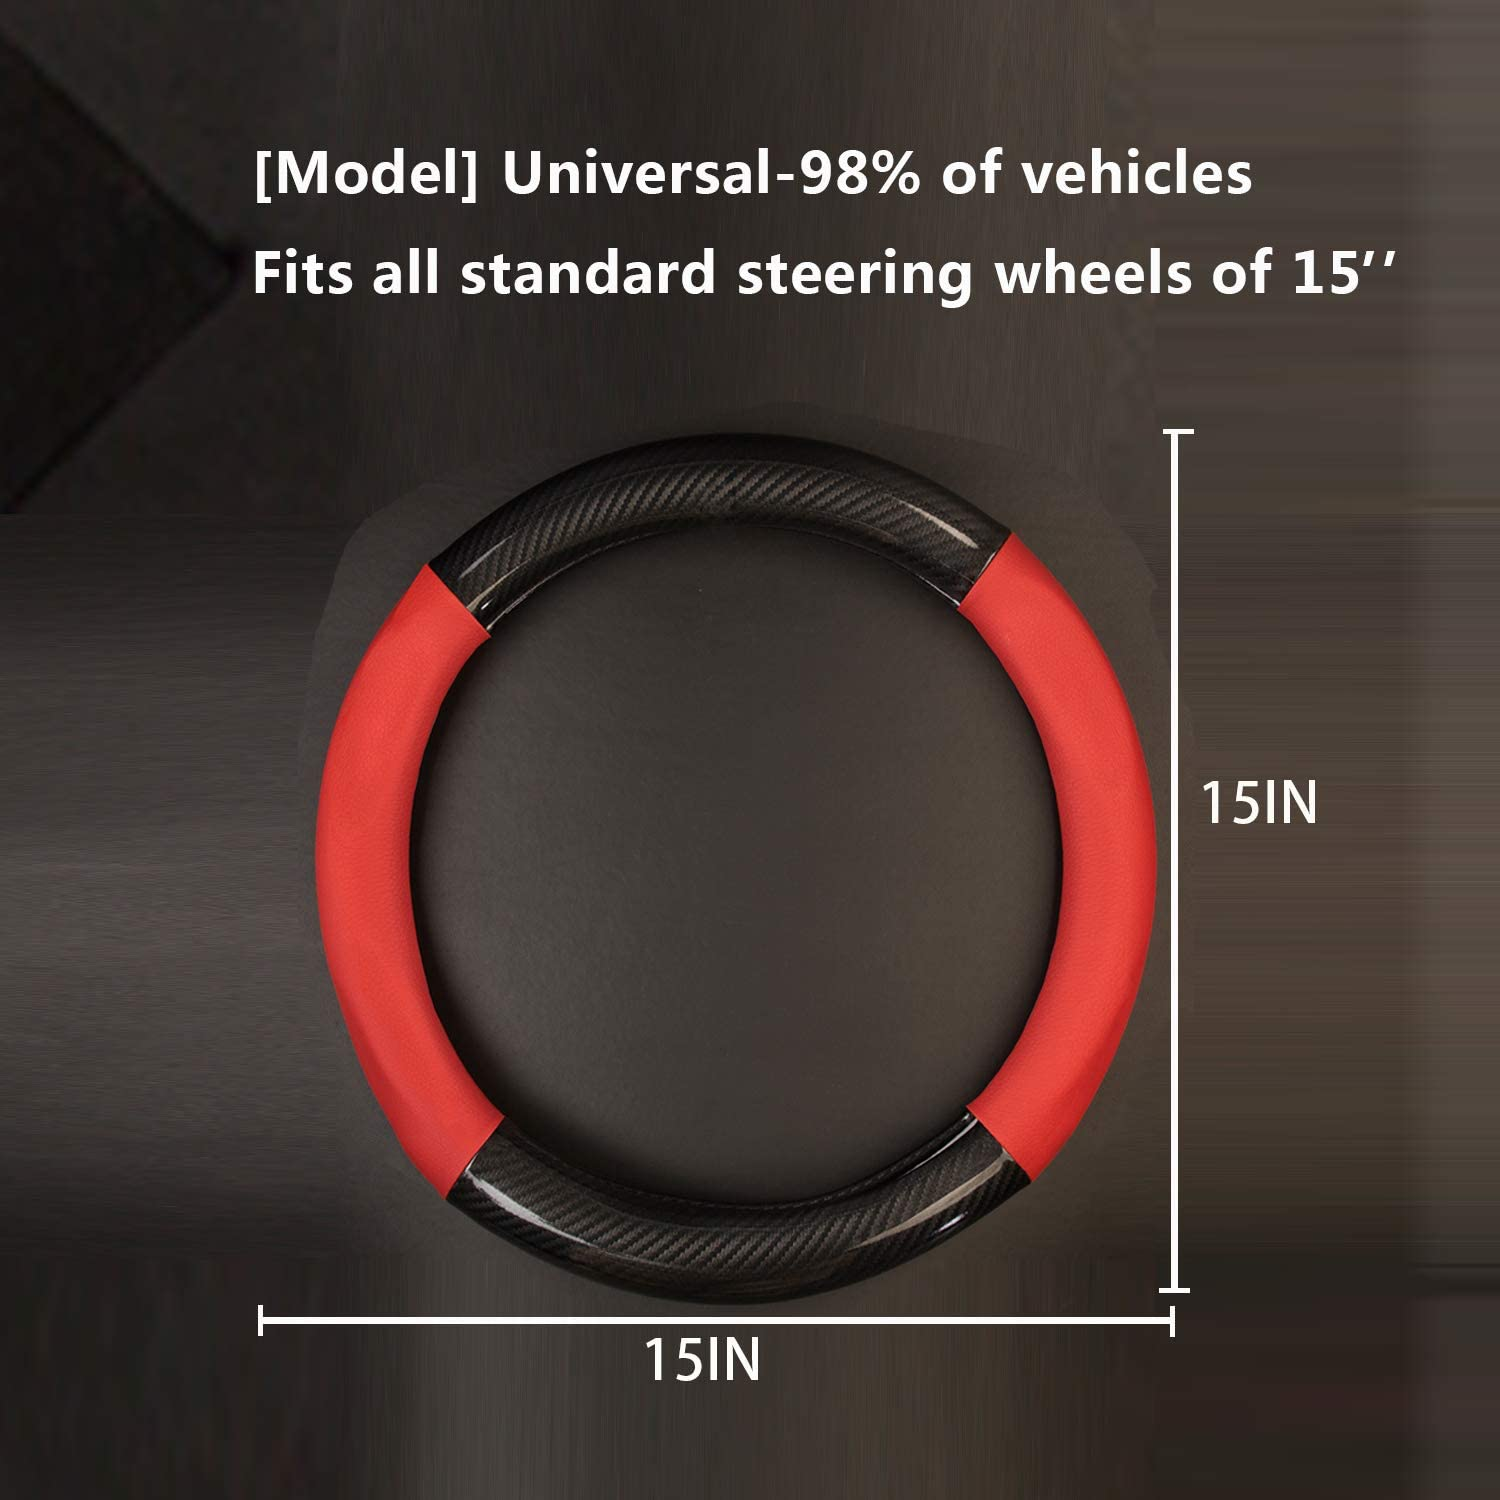 Leather Car Steering Wheel Covers for Women and Man Breathable Anti-Slip Odorless,Universal Fit 15 Inch Autsop Steering Wheel Cover Black